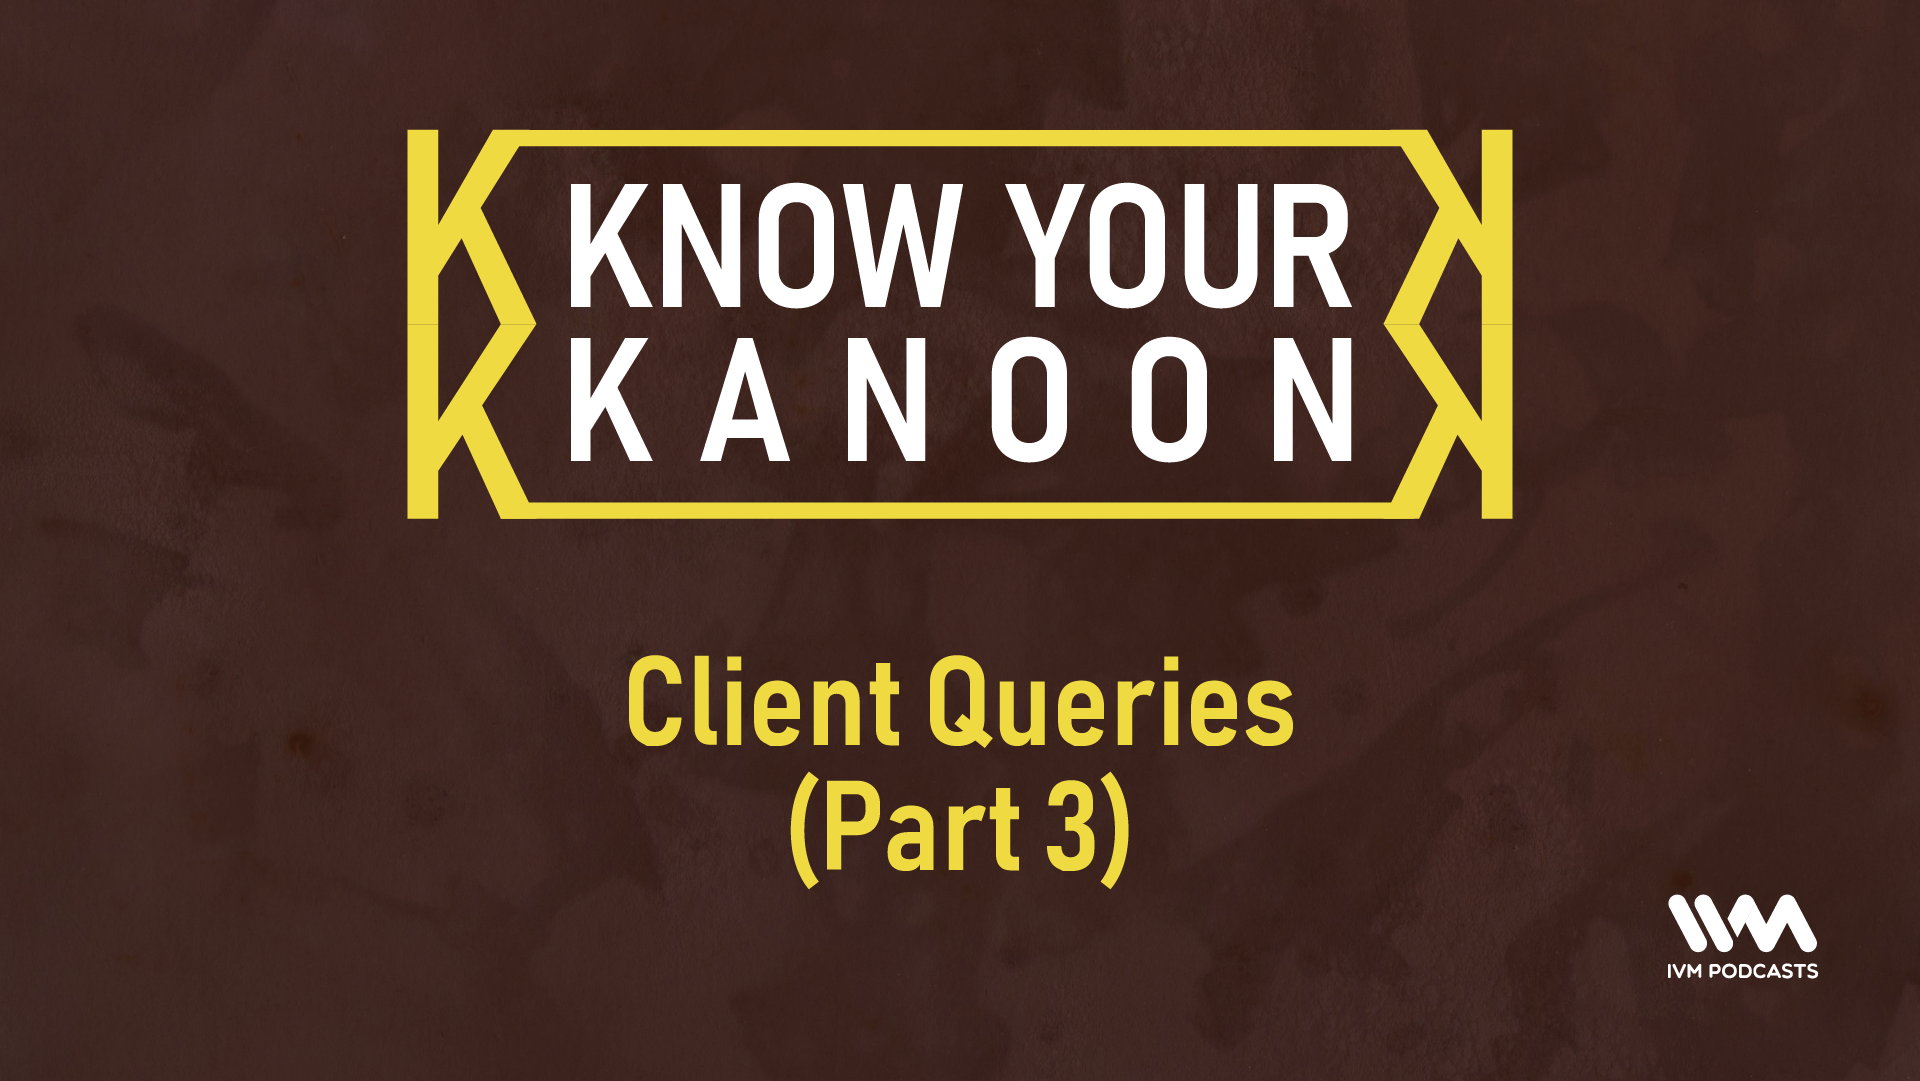 KnowYourKanoonEpisode31.png